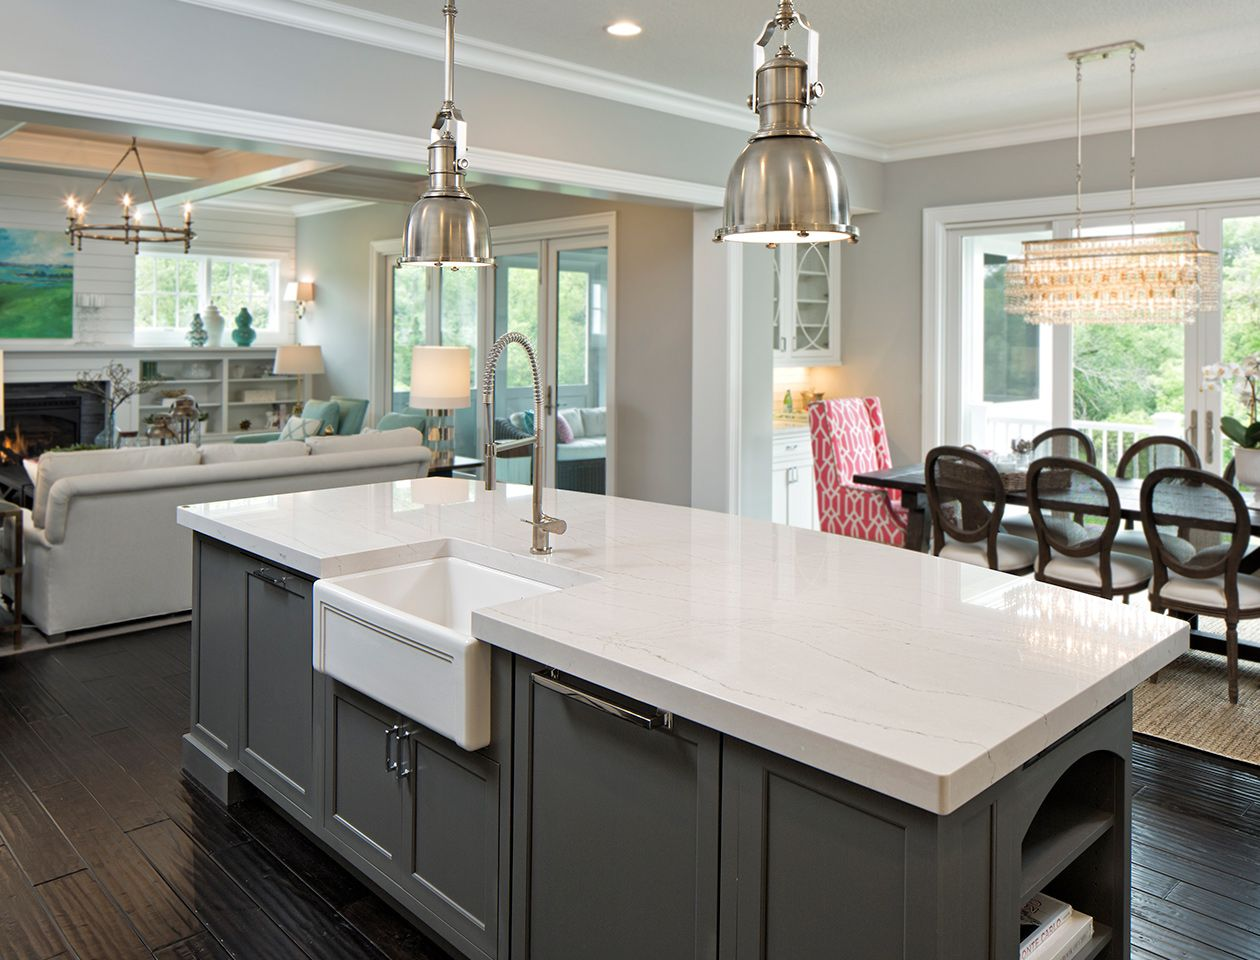 What Is Quartz Countertops 15 Stunning Quartz Countertop Colors To Gather Inspiration From